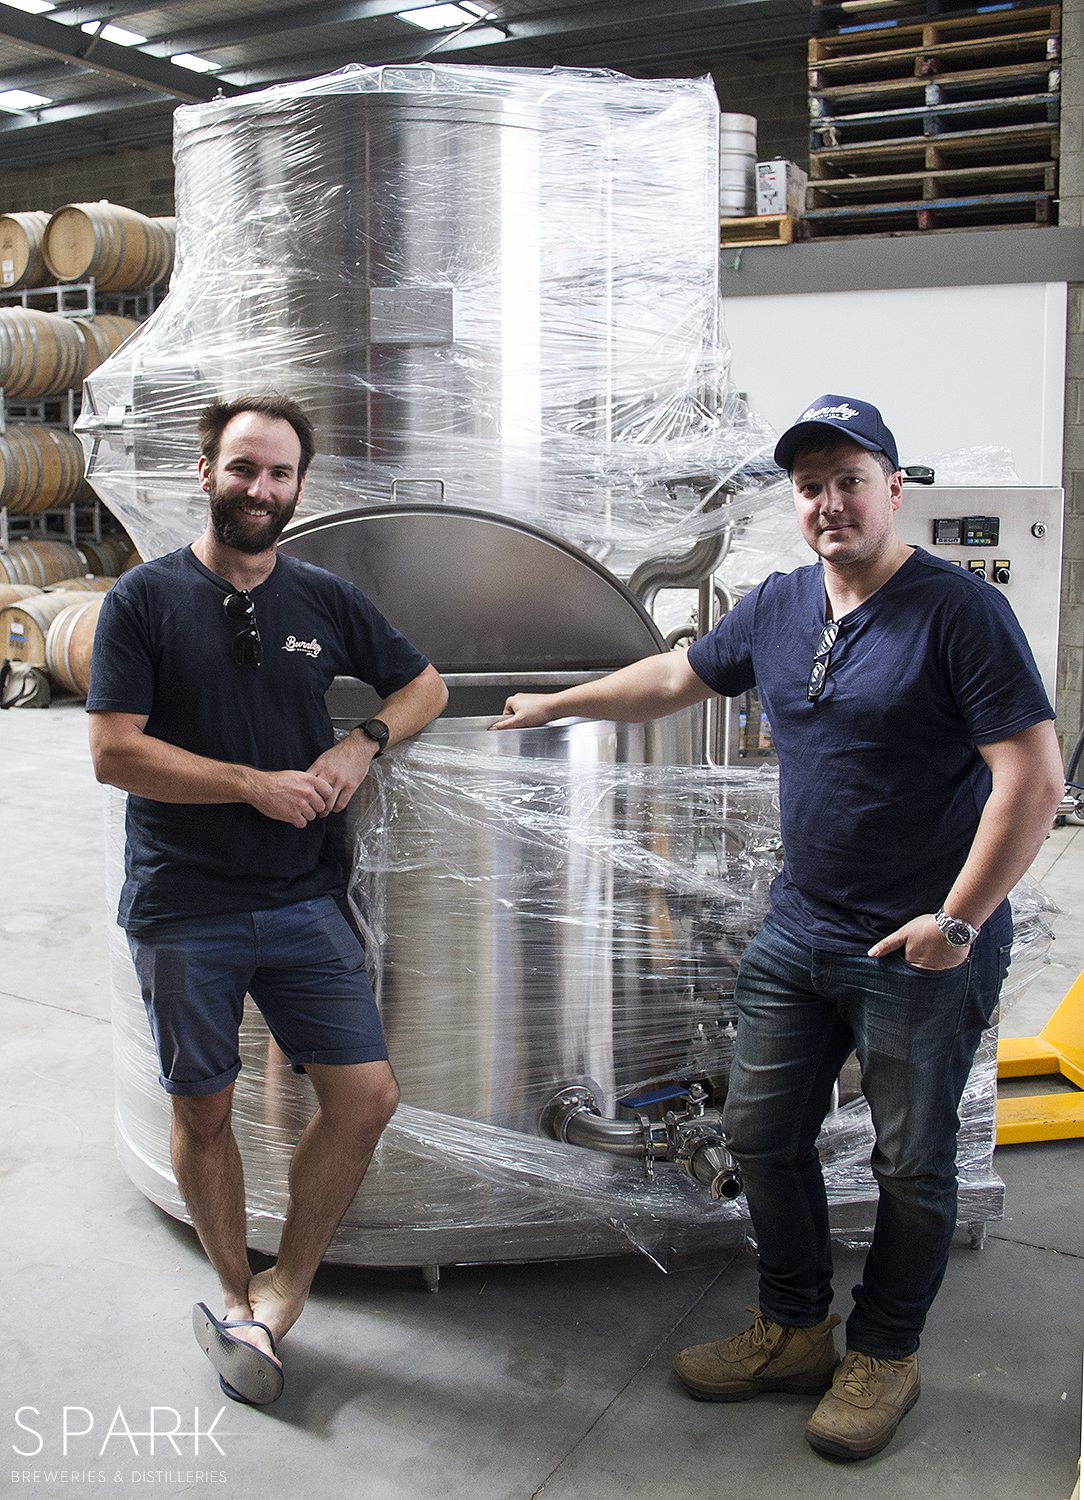 Phil and Neil (L-R) from Burnley brewing in front of their newly delivered SPARK K500 2.0 brewhouse. Looks tiny, but its still too heavy for them to lift.